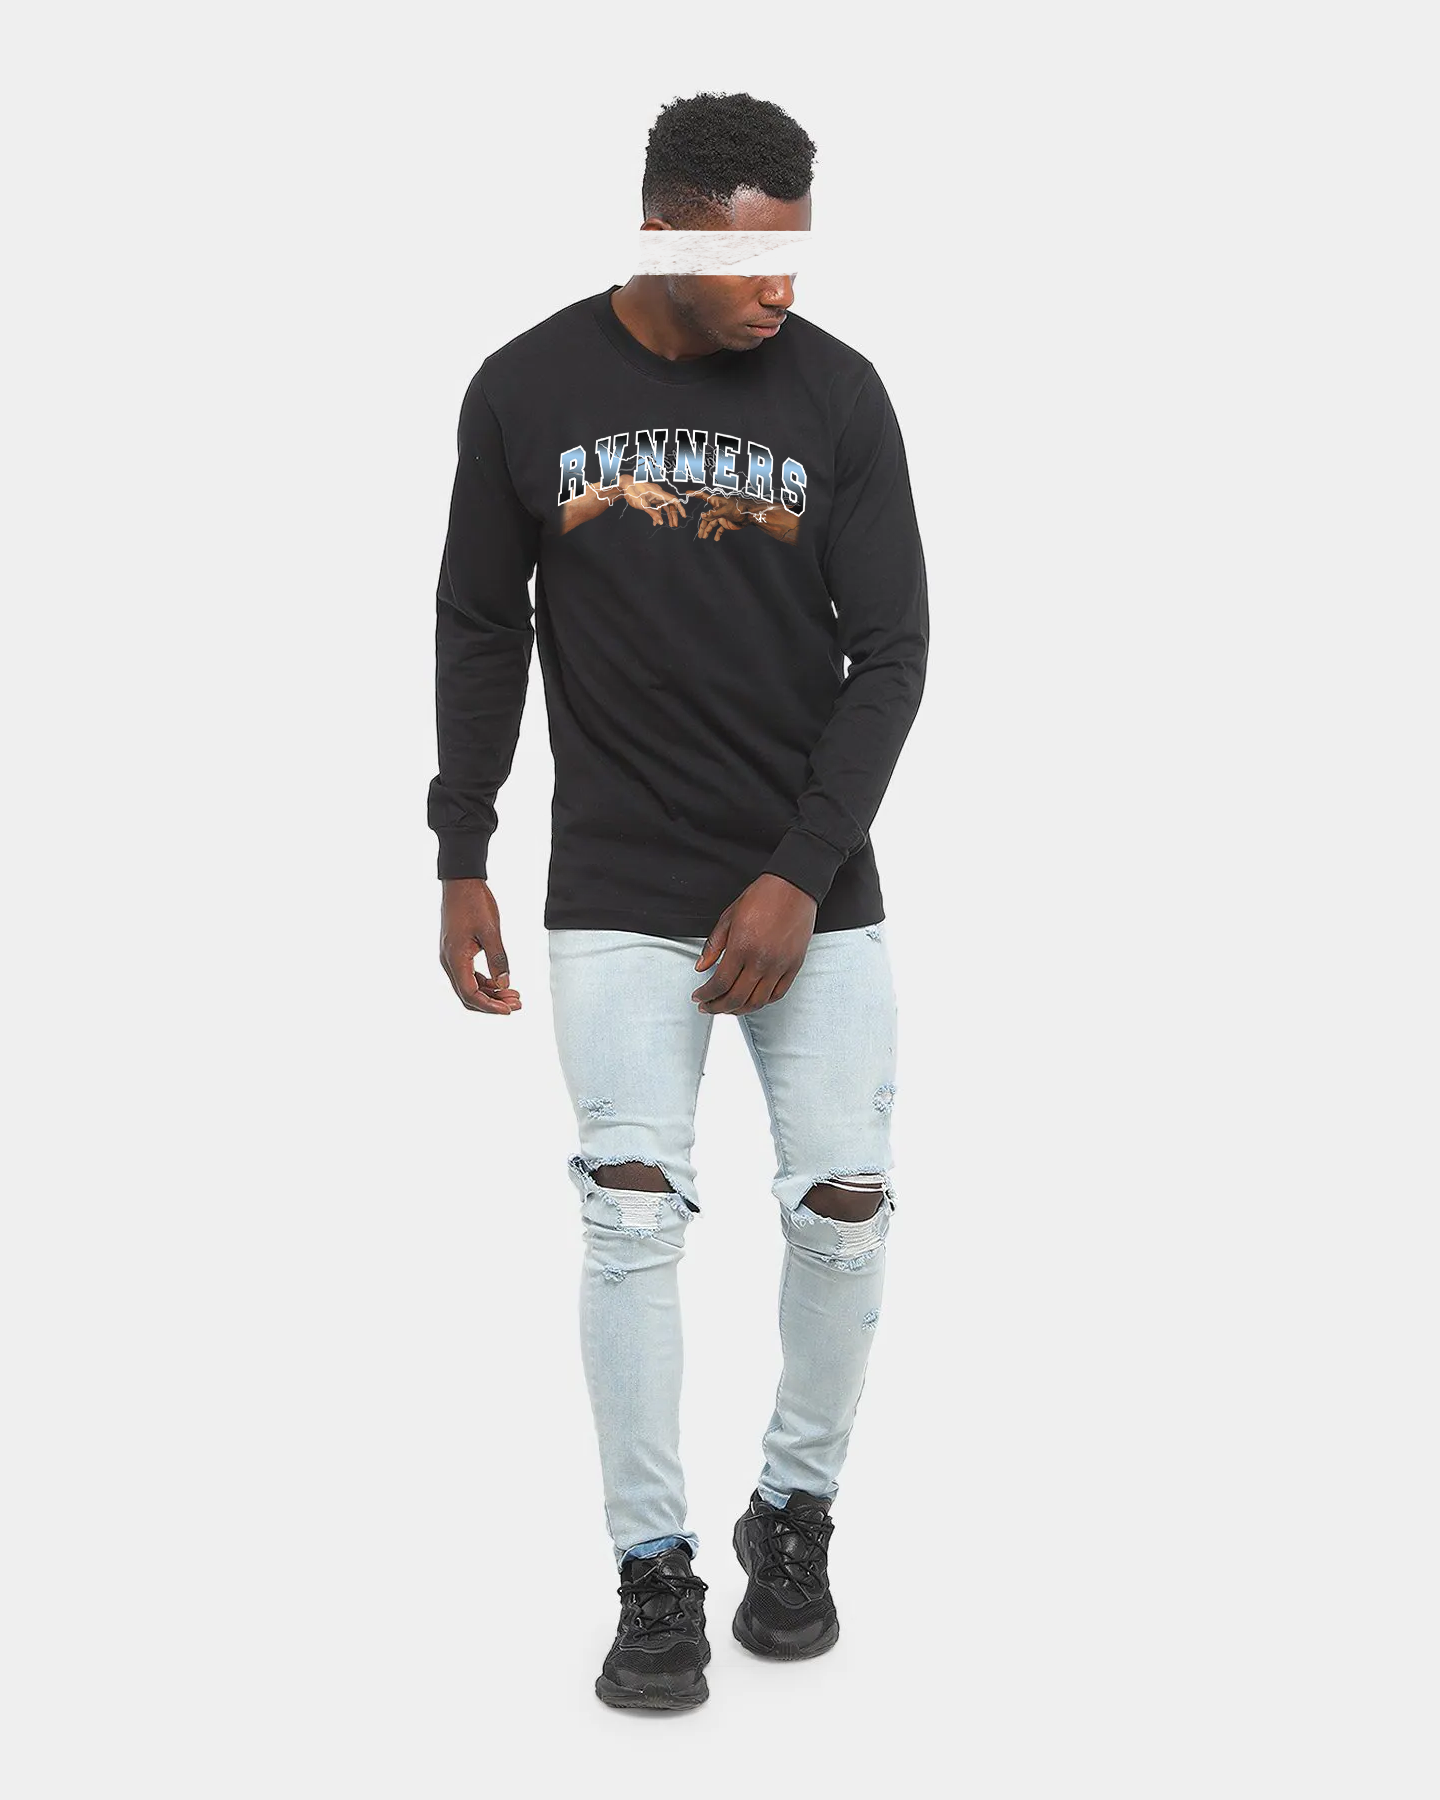 Rvnners Blue Long Sleeve Full Body